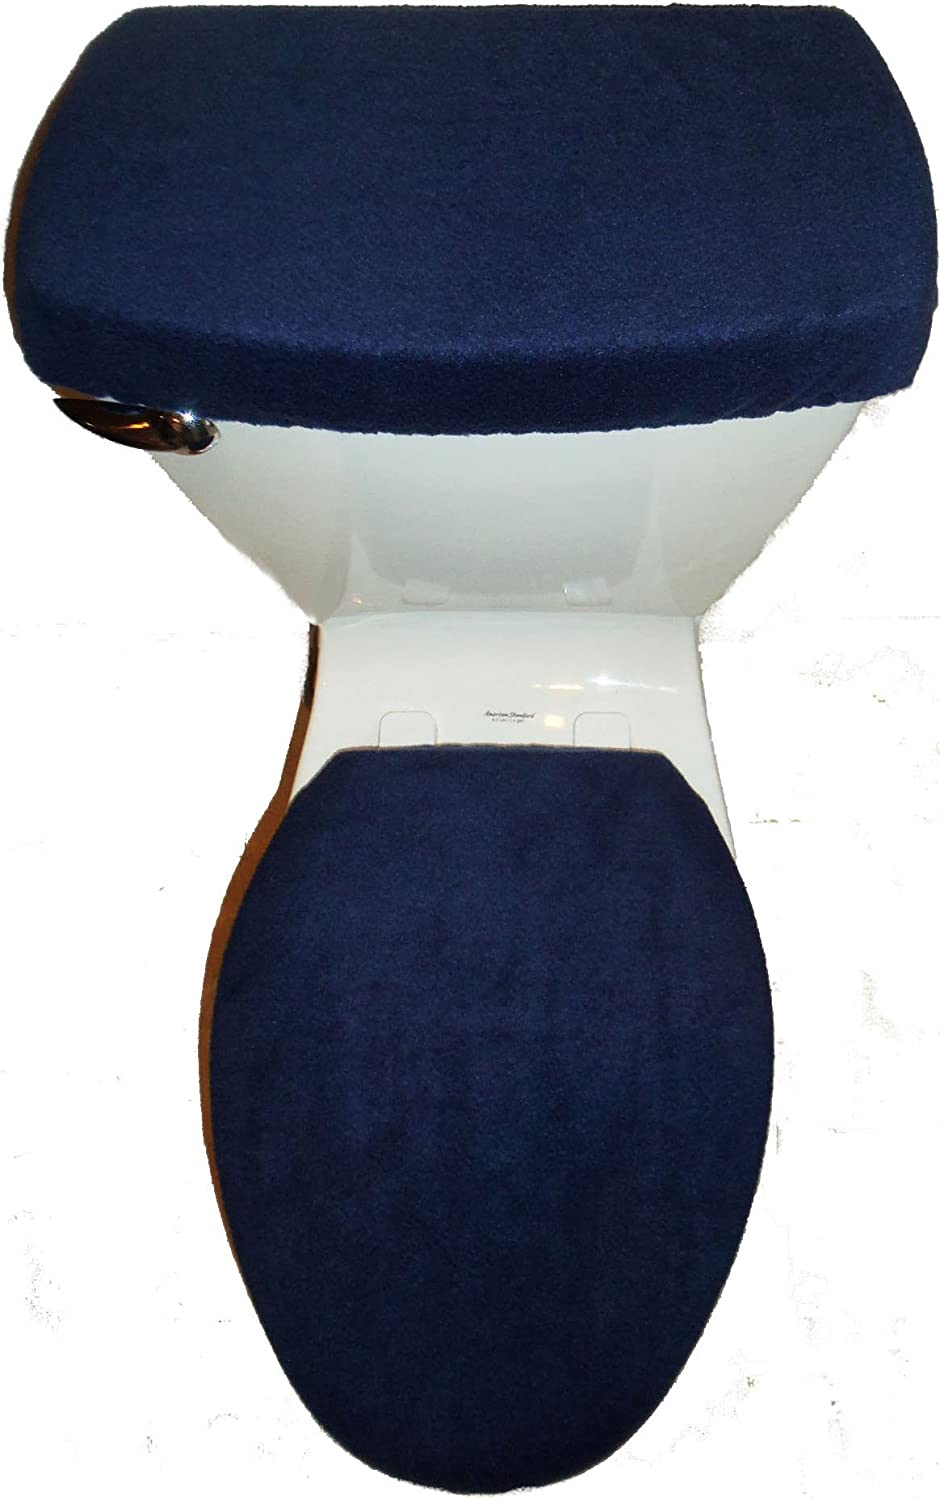 Strange Navy Blue Fleece Toilet Seat Cover Set Machost Co Dining Chair Design Ideas Machostcouk